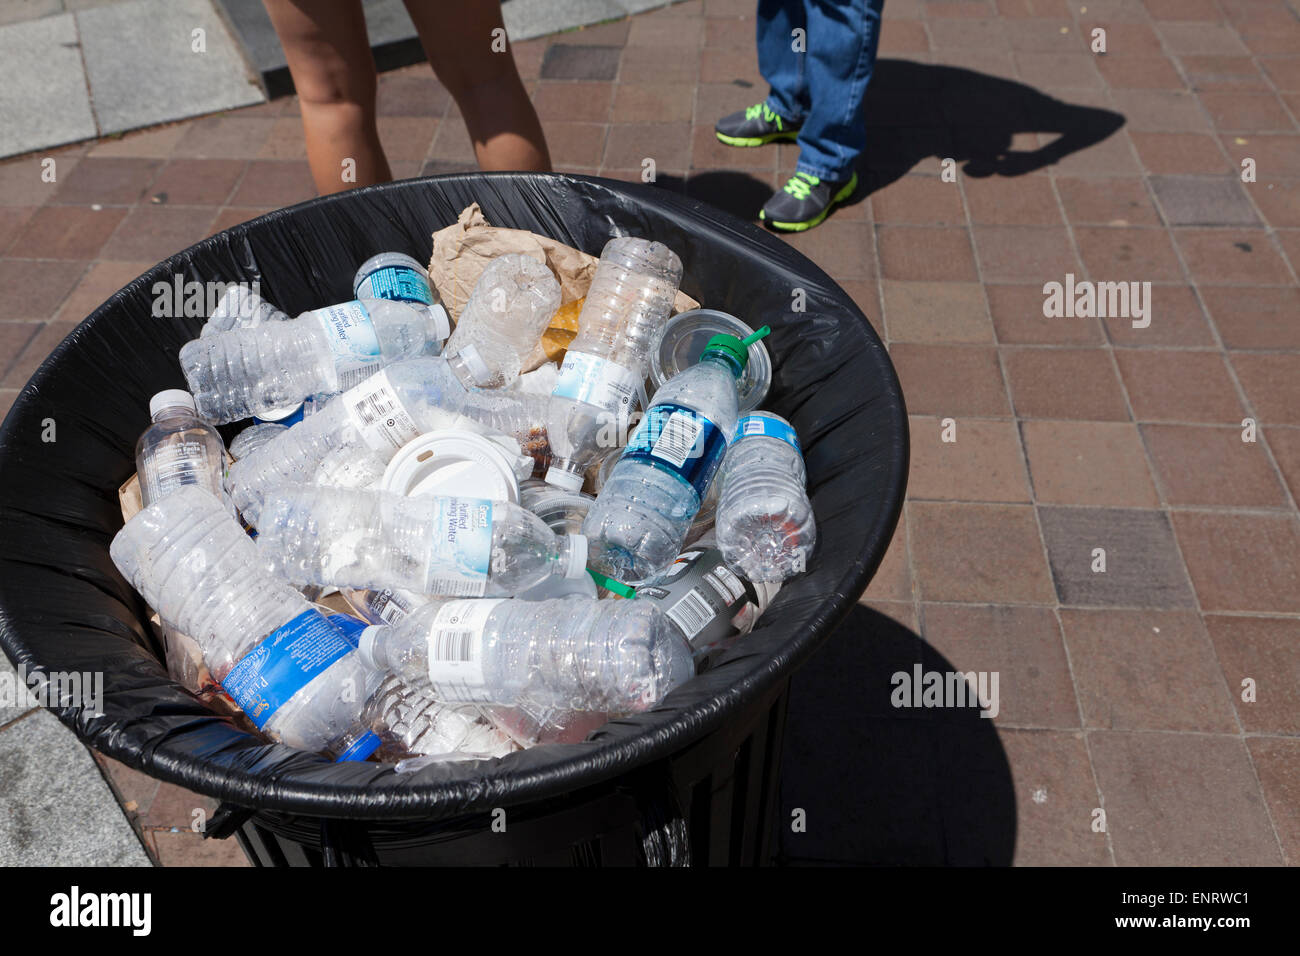 Plastic water bottles in public waste bin - USA - Stock Image